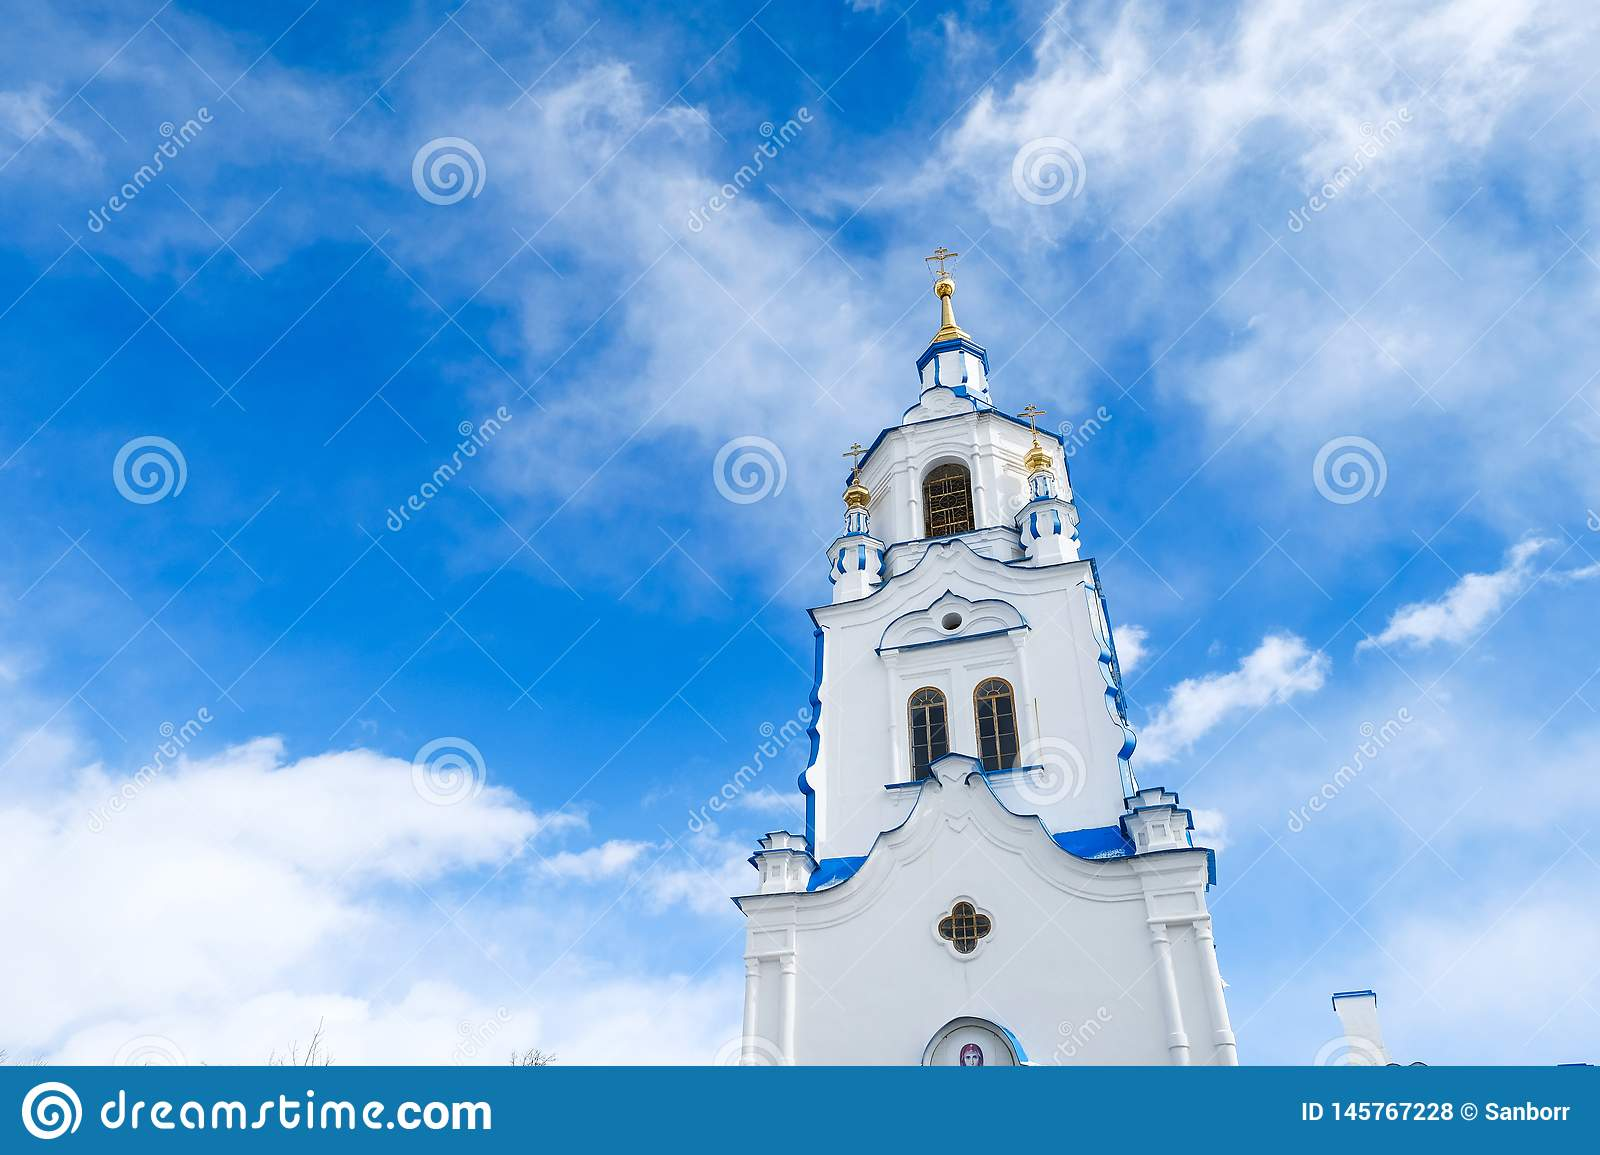 The tower of Church on background of blue sky with clouds. Russia, Tyumen